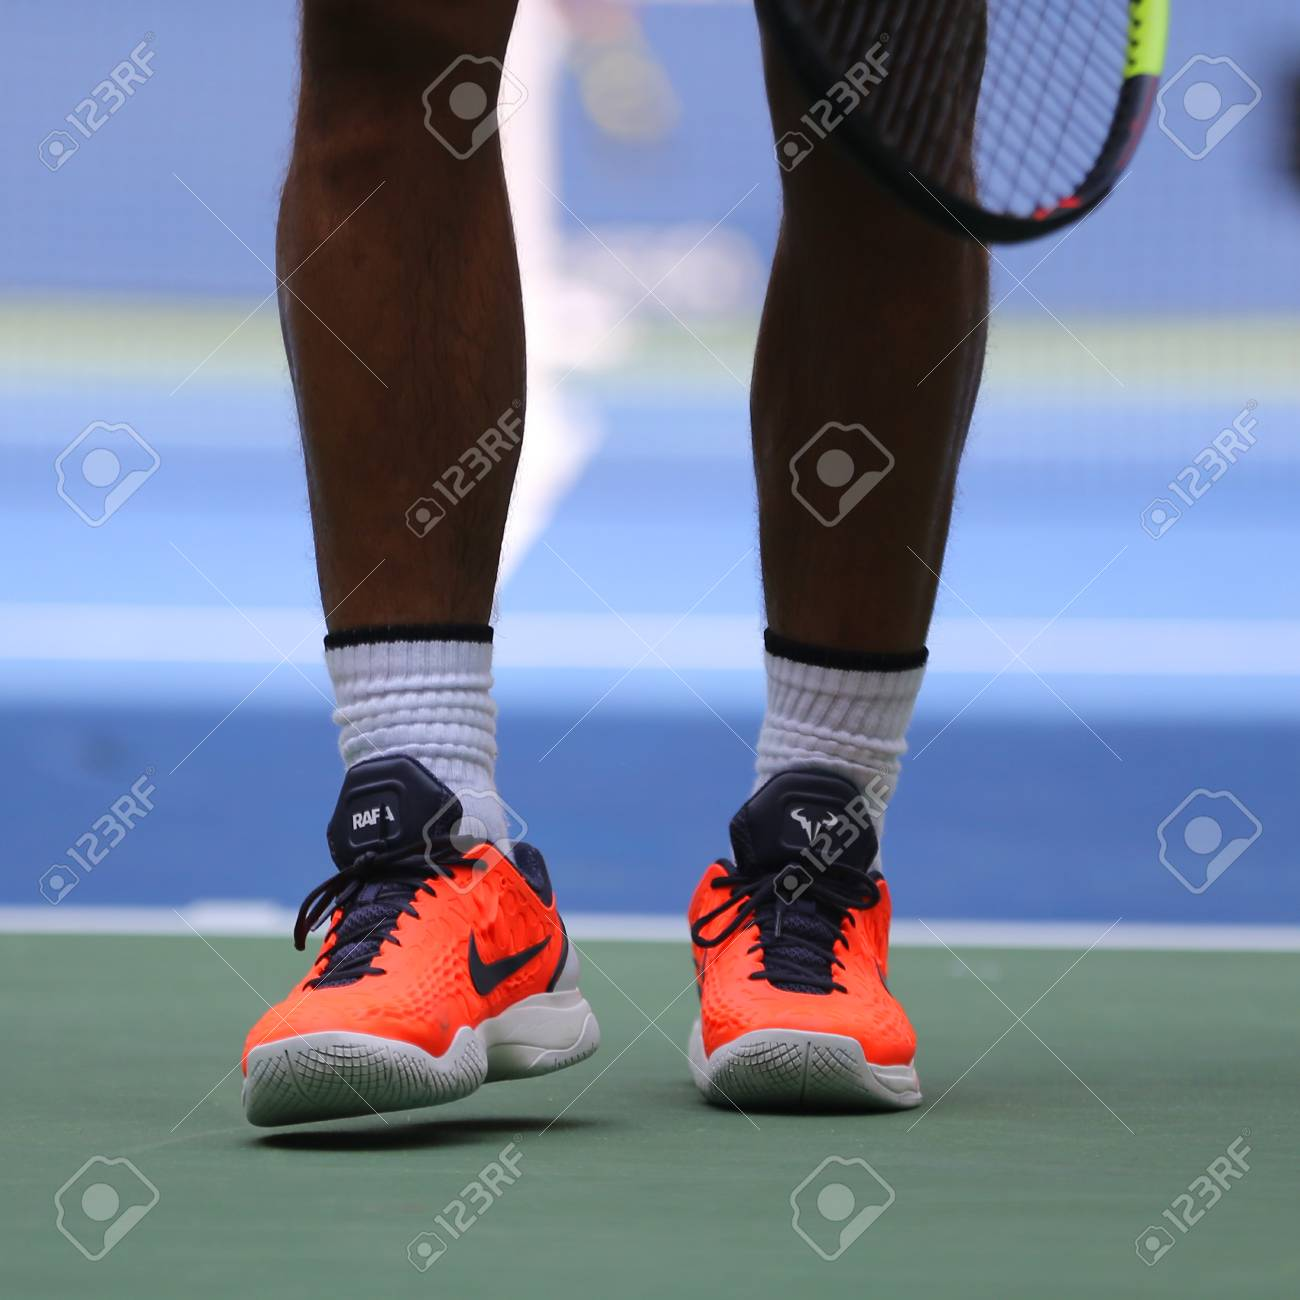 New York August 26 2018 Grand Slam Champion Rafael Nadal Stock Photo Picture And Royalty Free Image Image 114102410